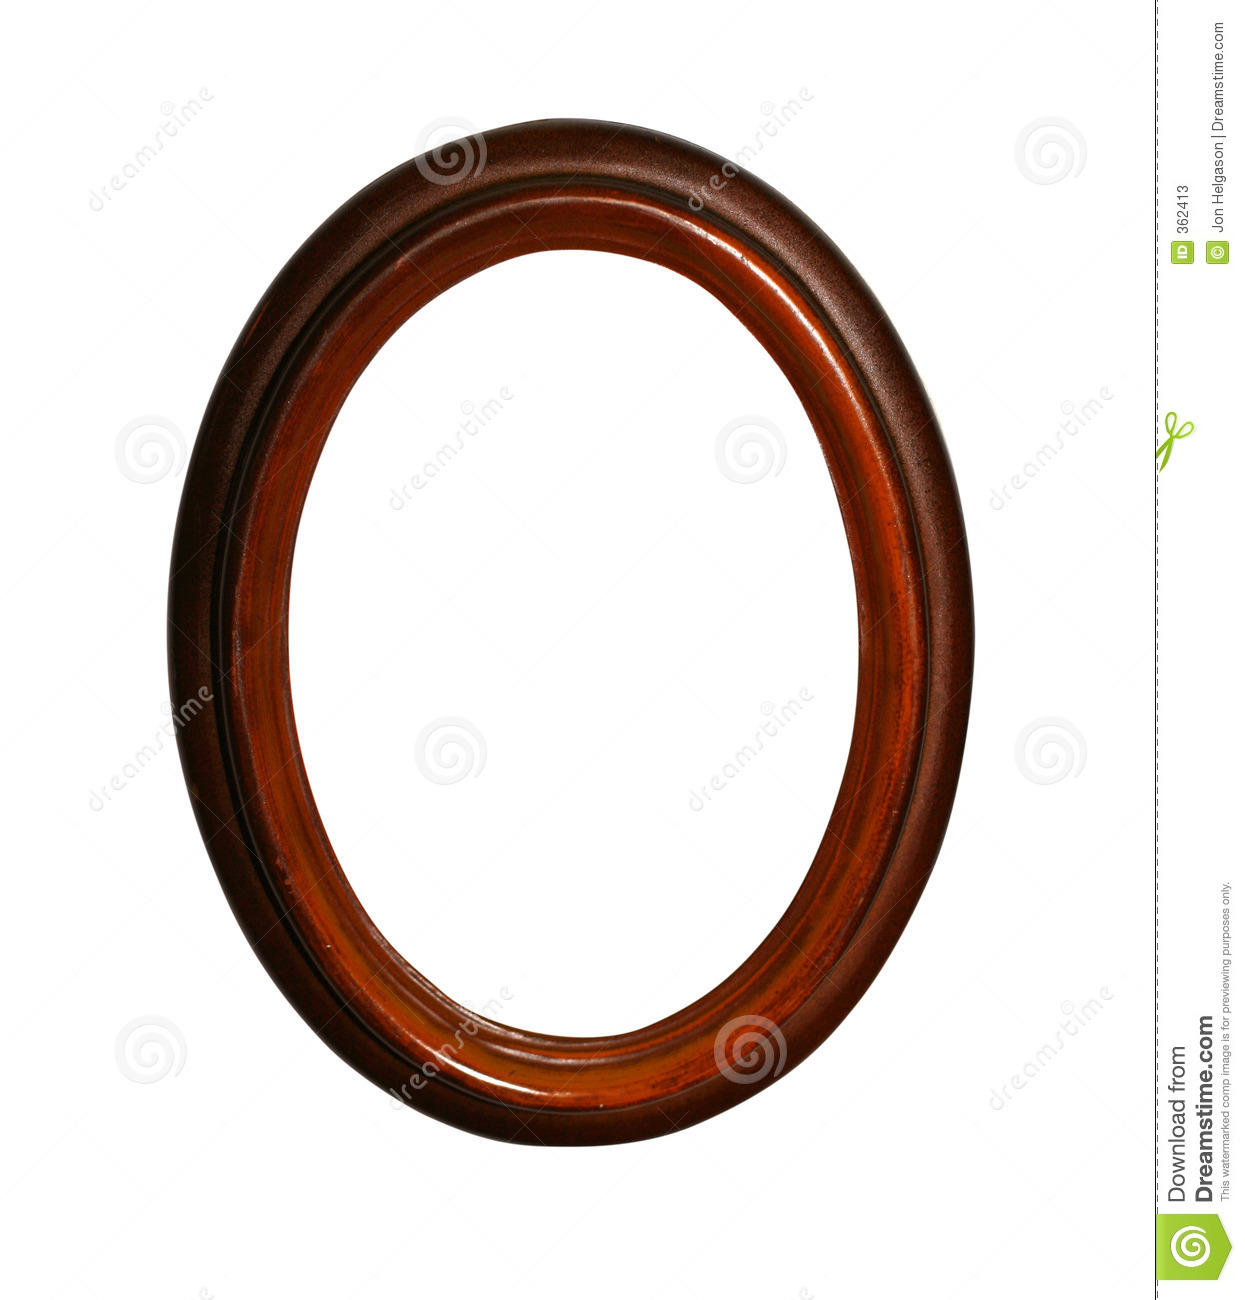 More similar stock images of ` Wooden oval frame with path `